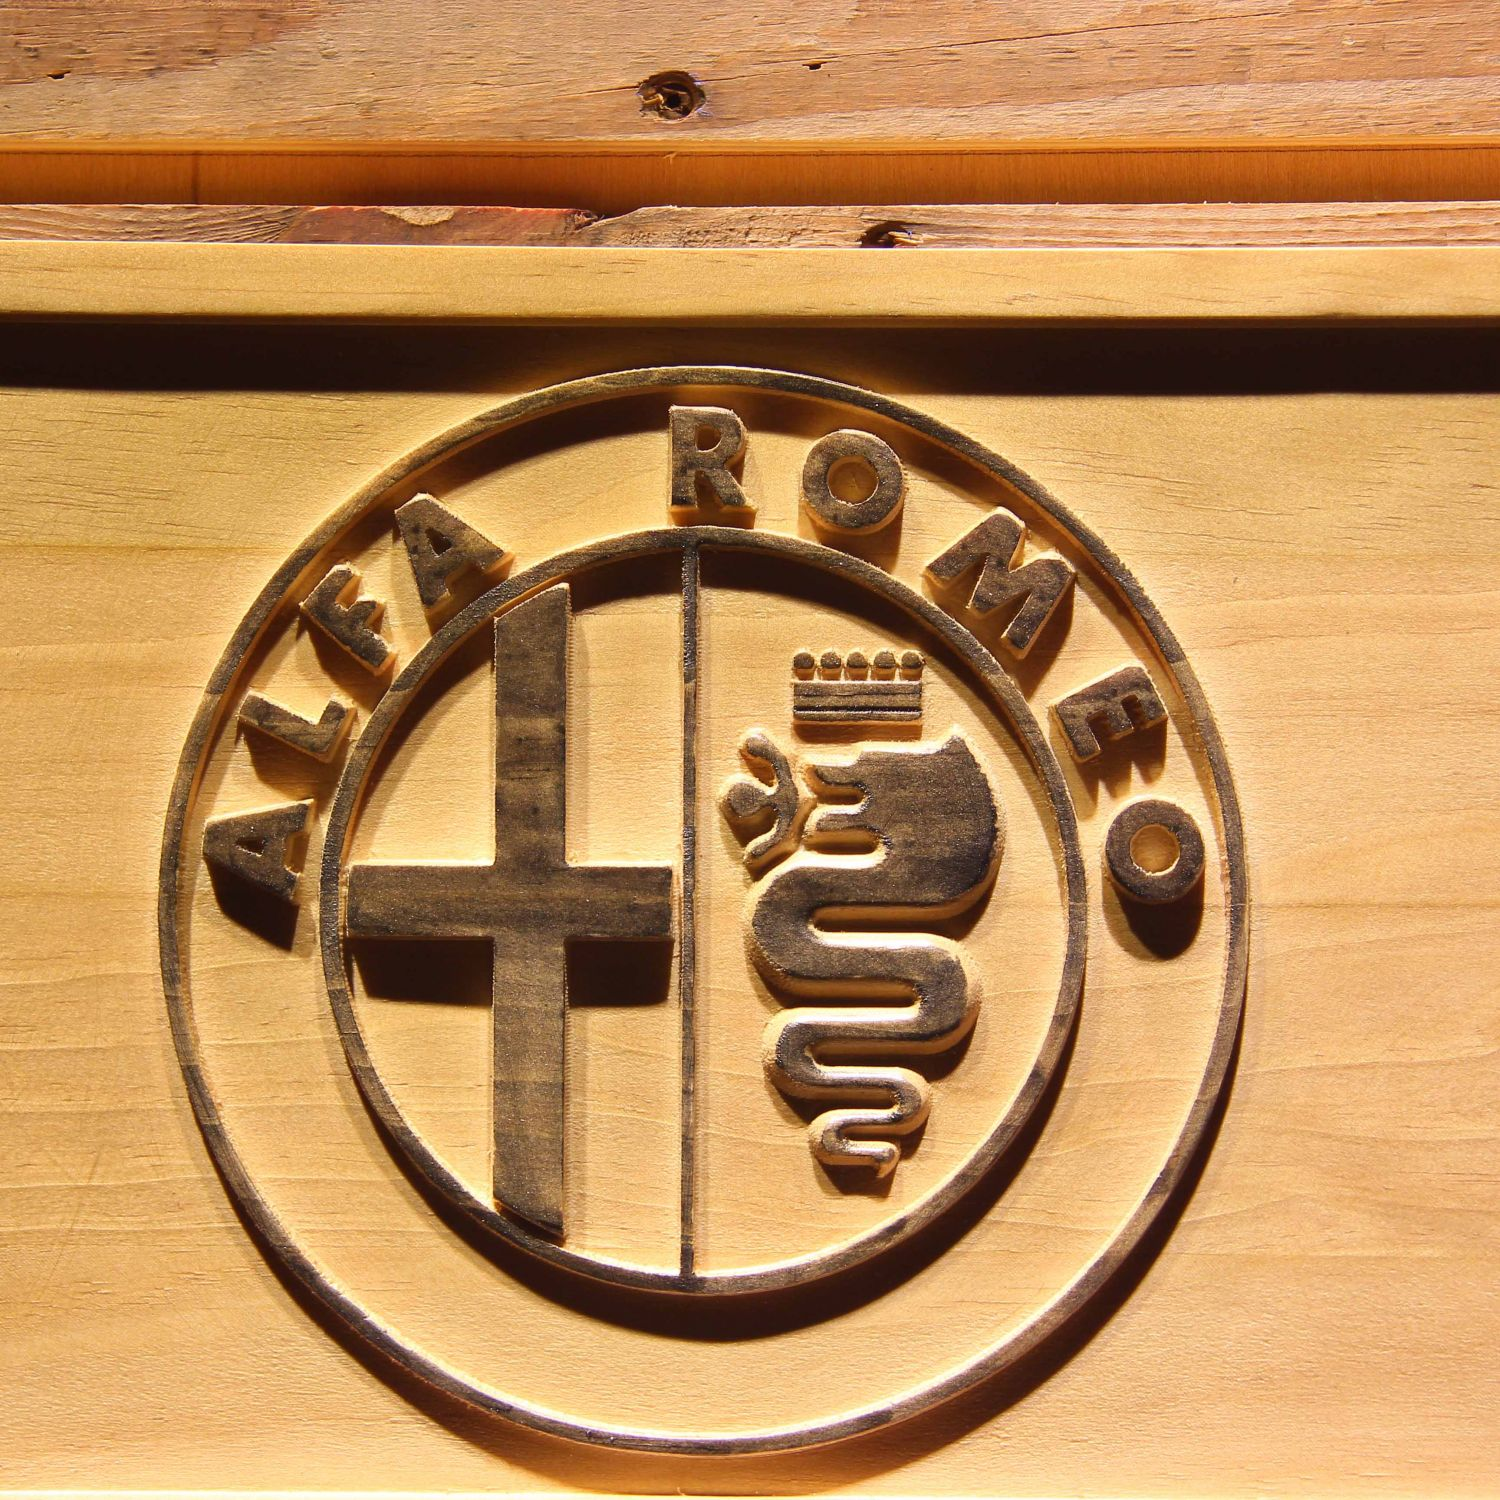 A Garage Is Not Garage Without Alfa Romeo sign for garage man cave home